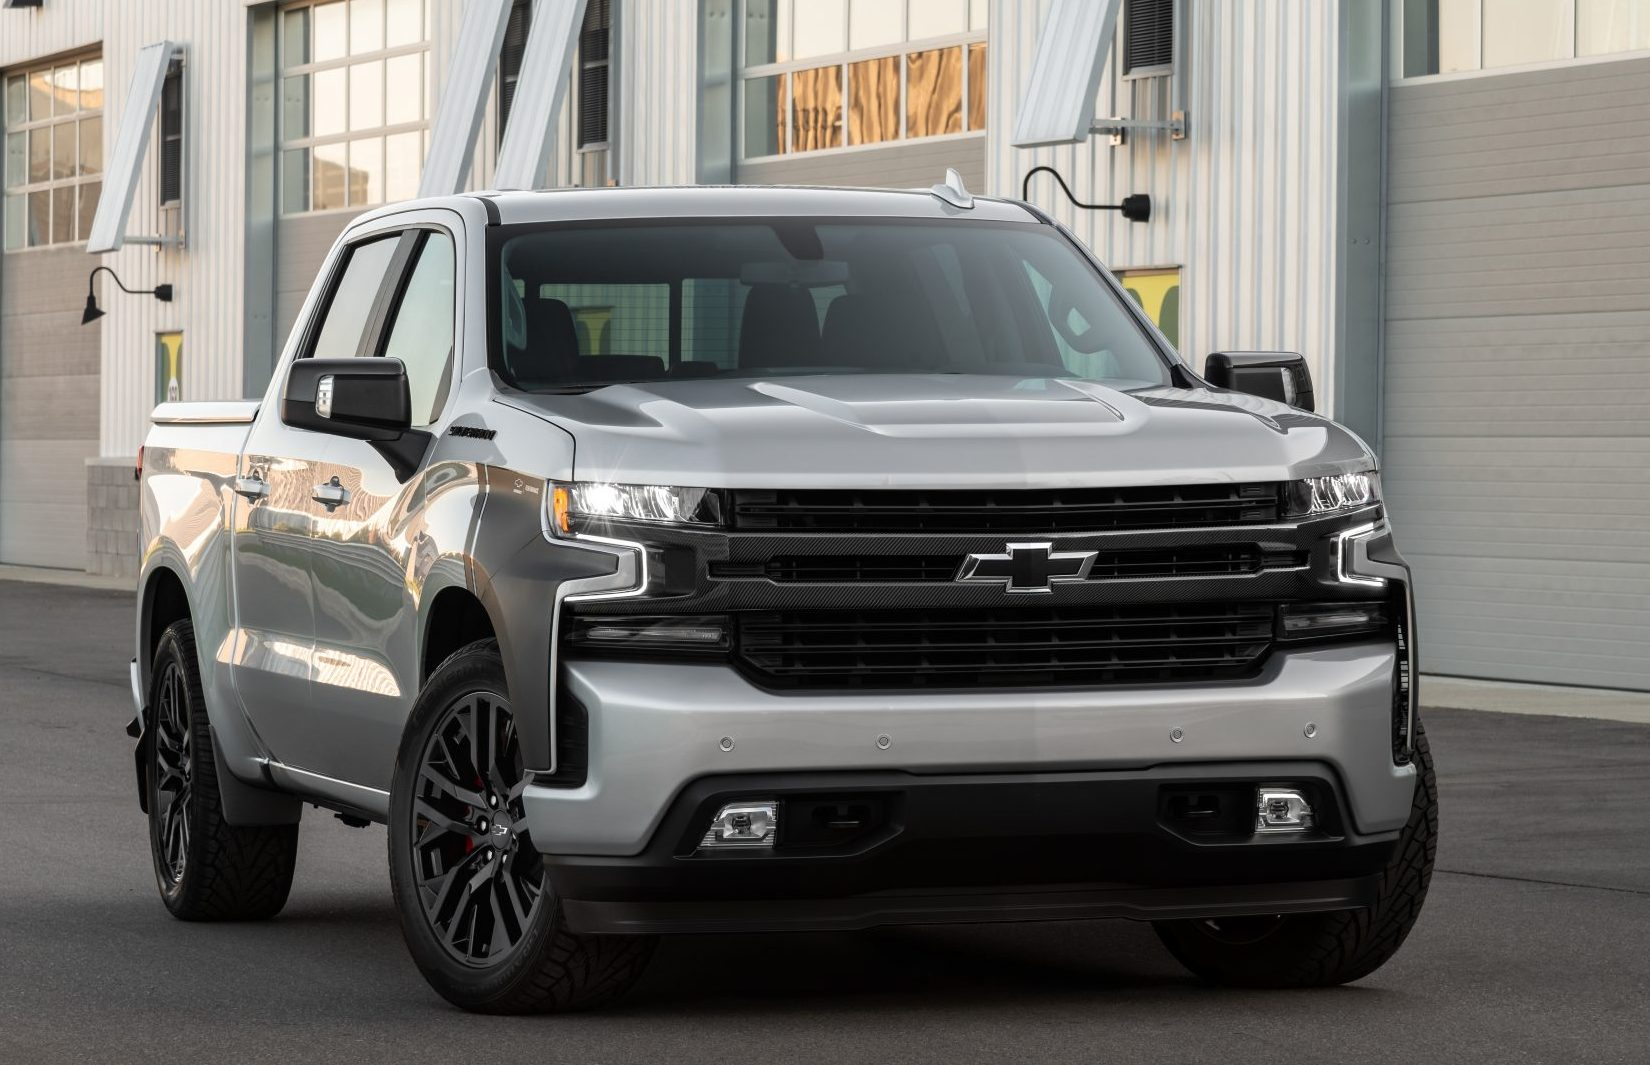 2019 Chevy Silverado 1500: Here Are Four Ways To Customize Images Of A 2021 Chevy Silverado Models, Manual, Mods